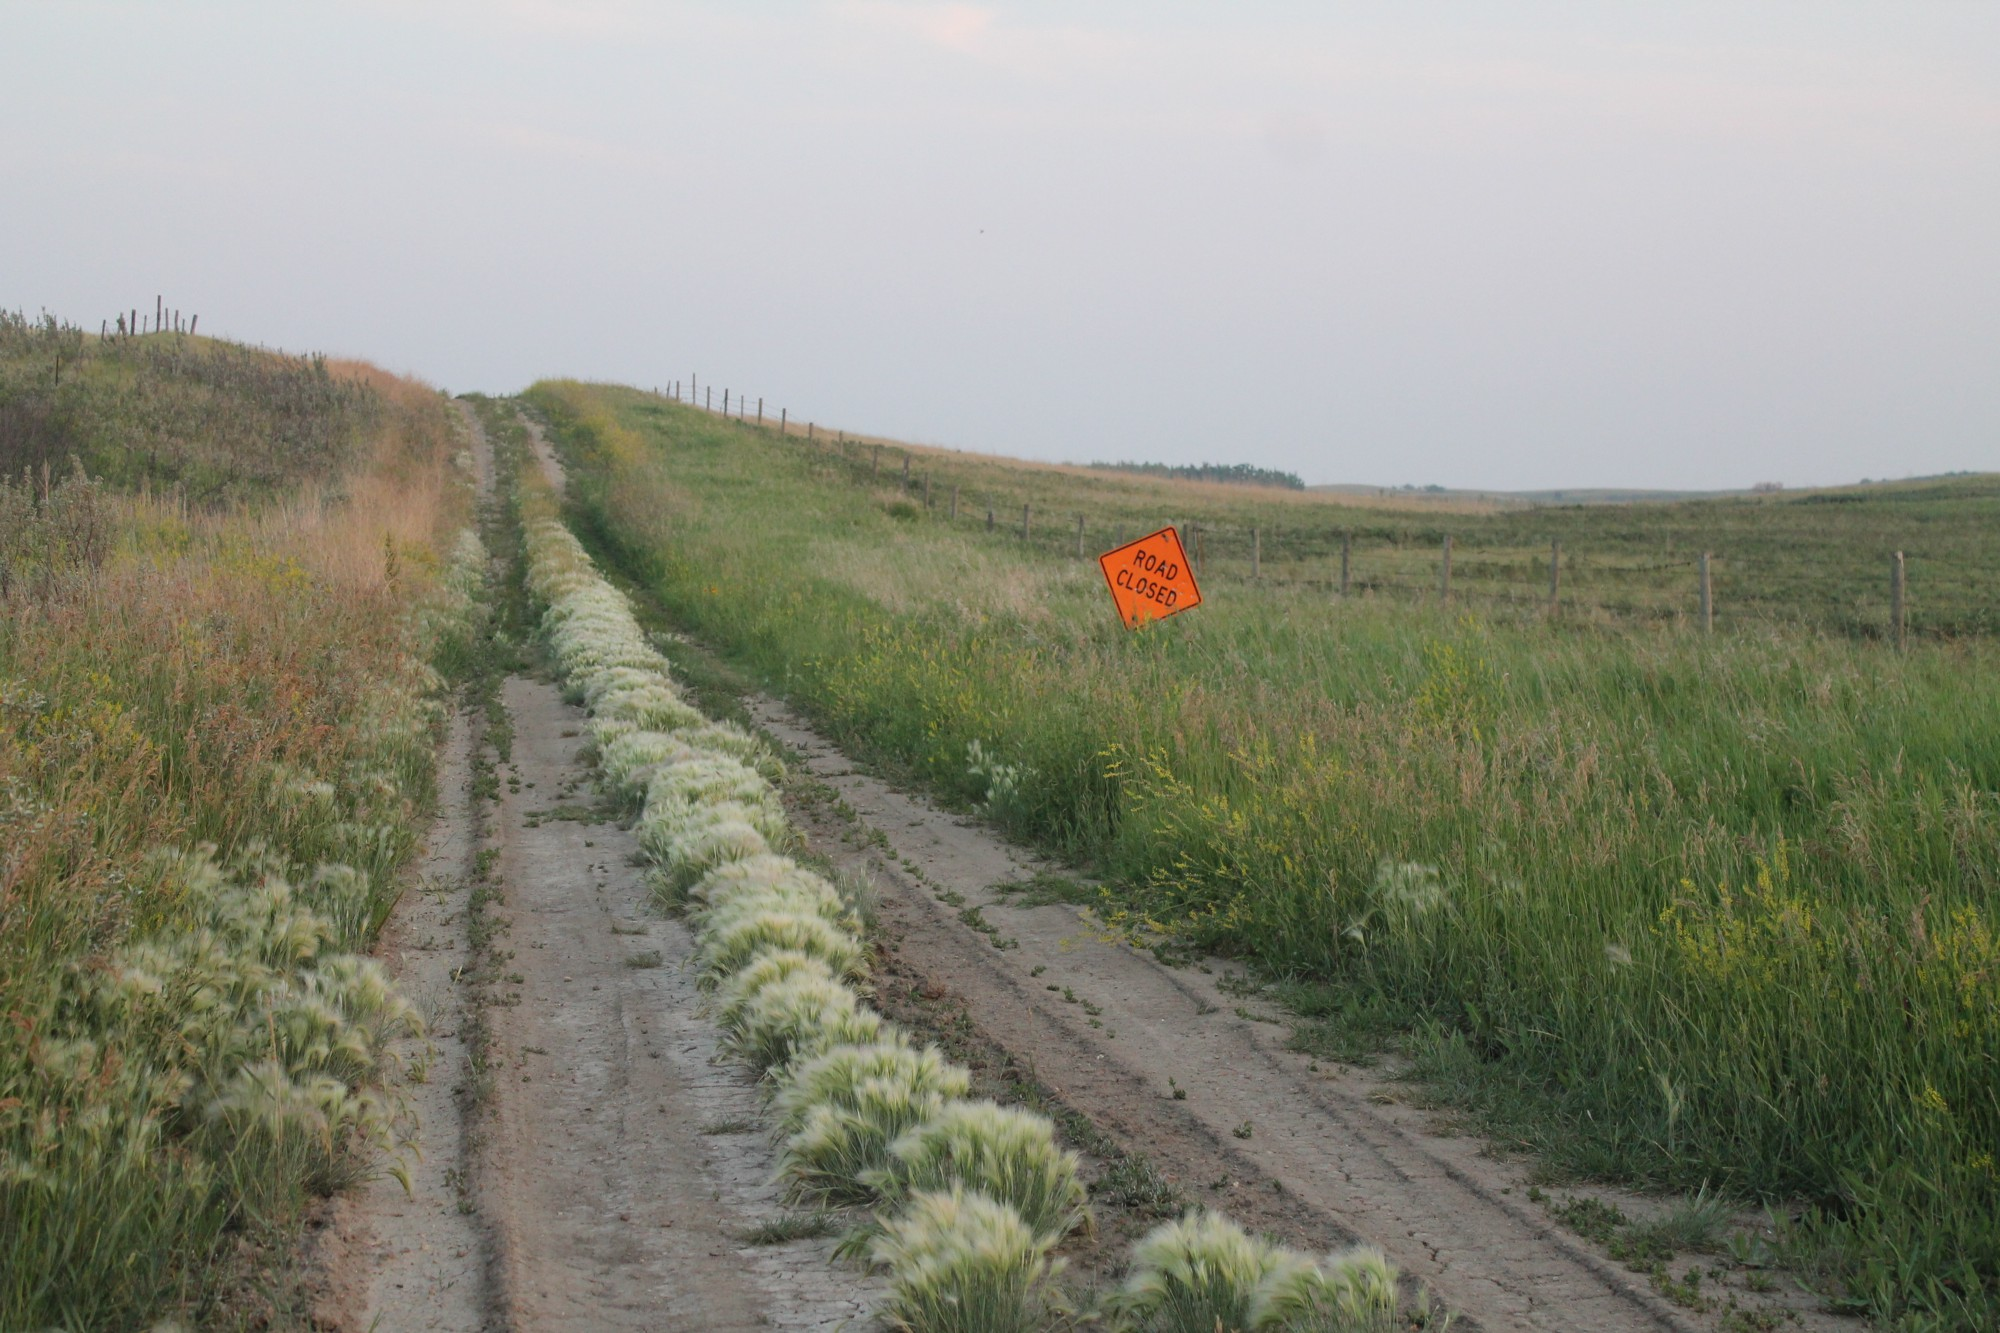 A dirt road in the country. Wild flowers and long grass grow on the outer edges. Tufts of white fox tails grow in the middle. An orange metal sign reads Road Closed.